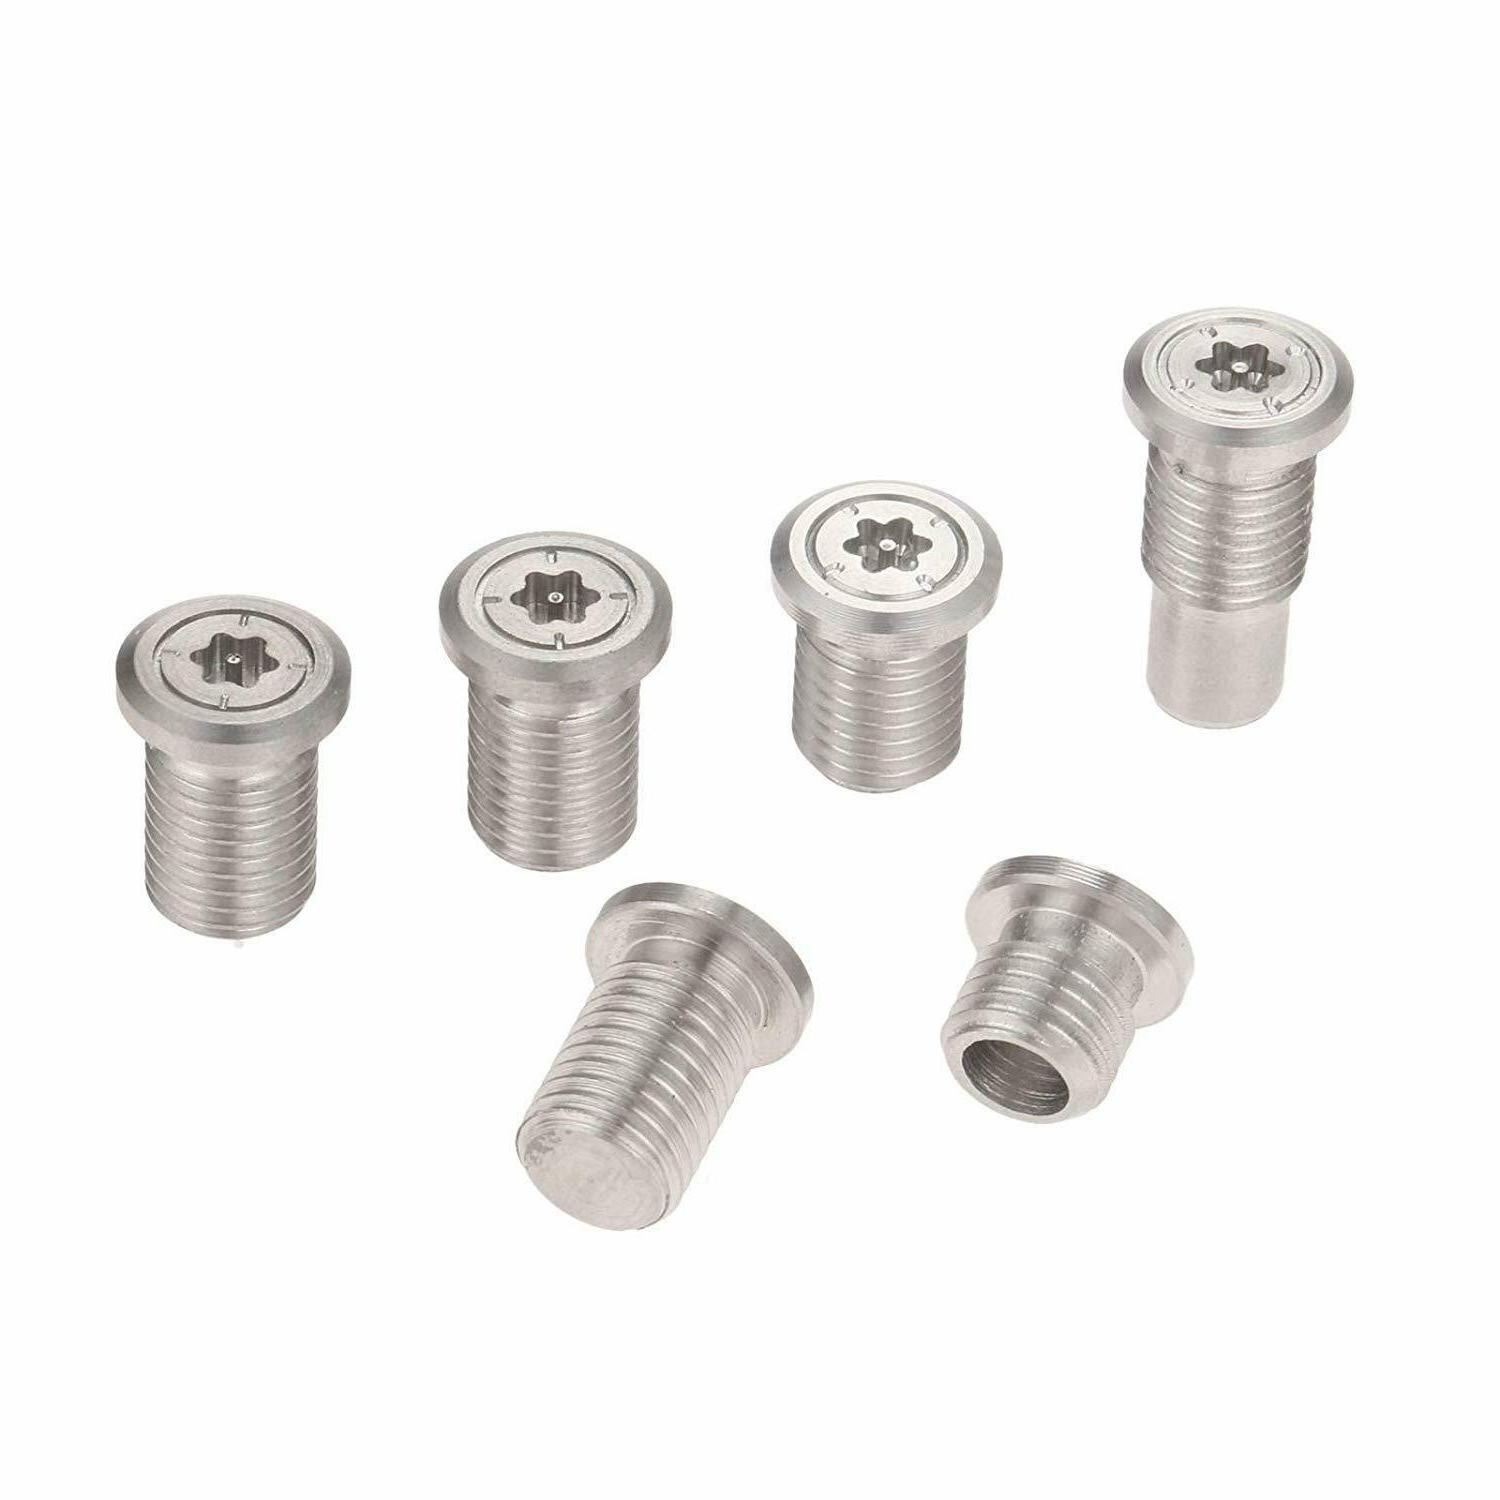 5pcs Compatible with Taylormade M4 M6 Driver Head Weight - 2